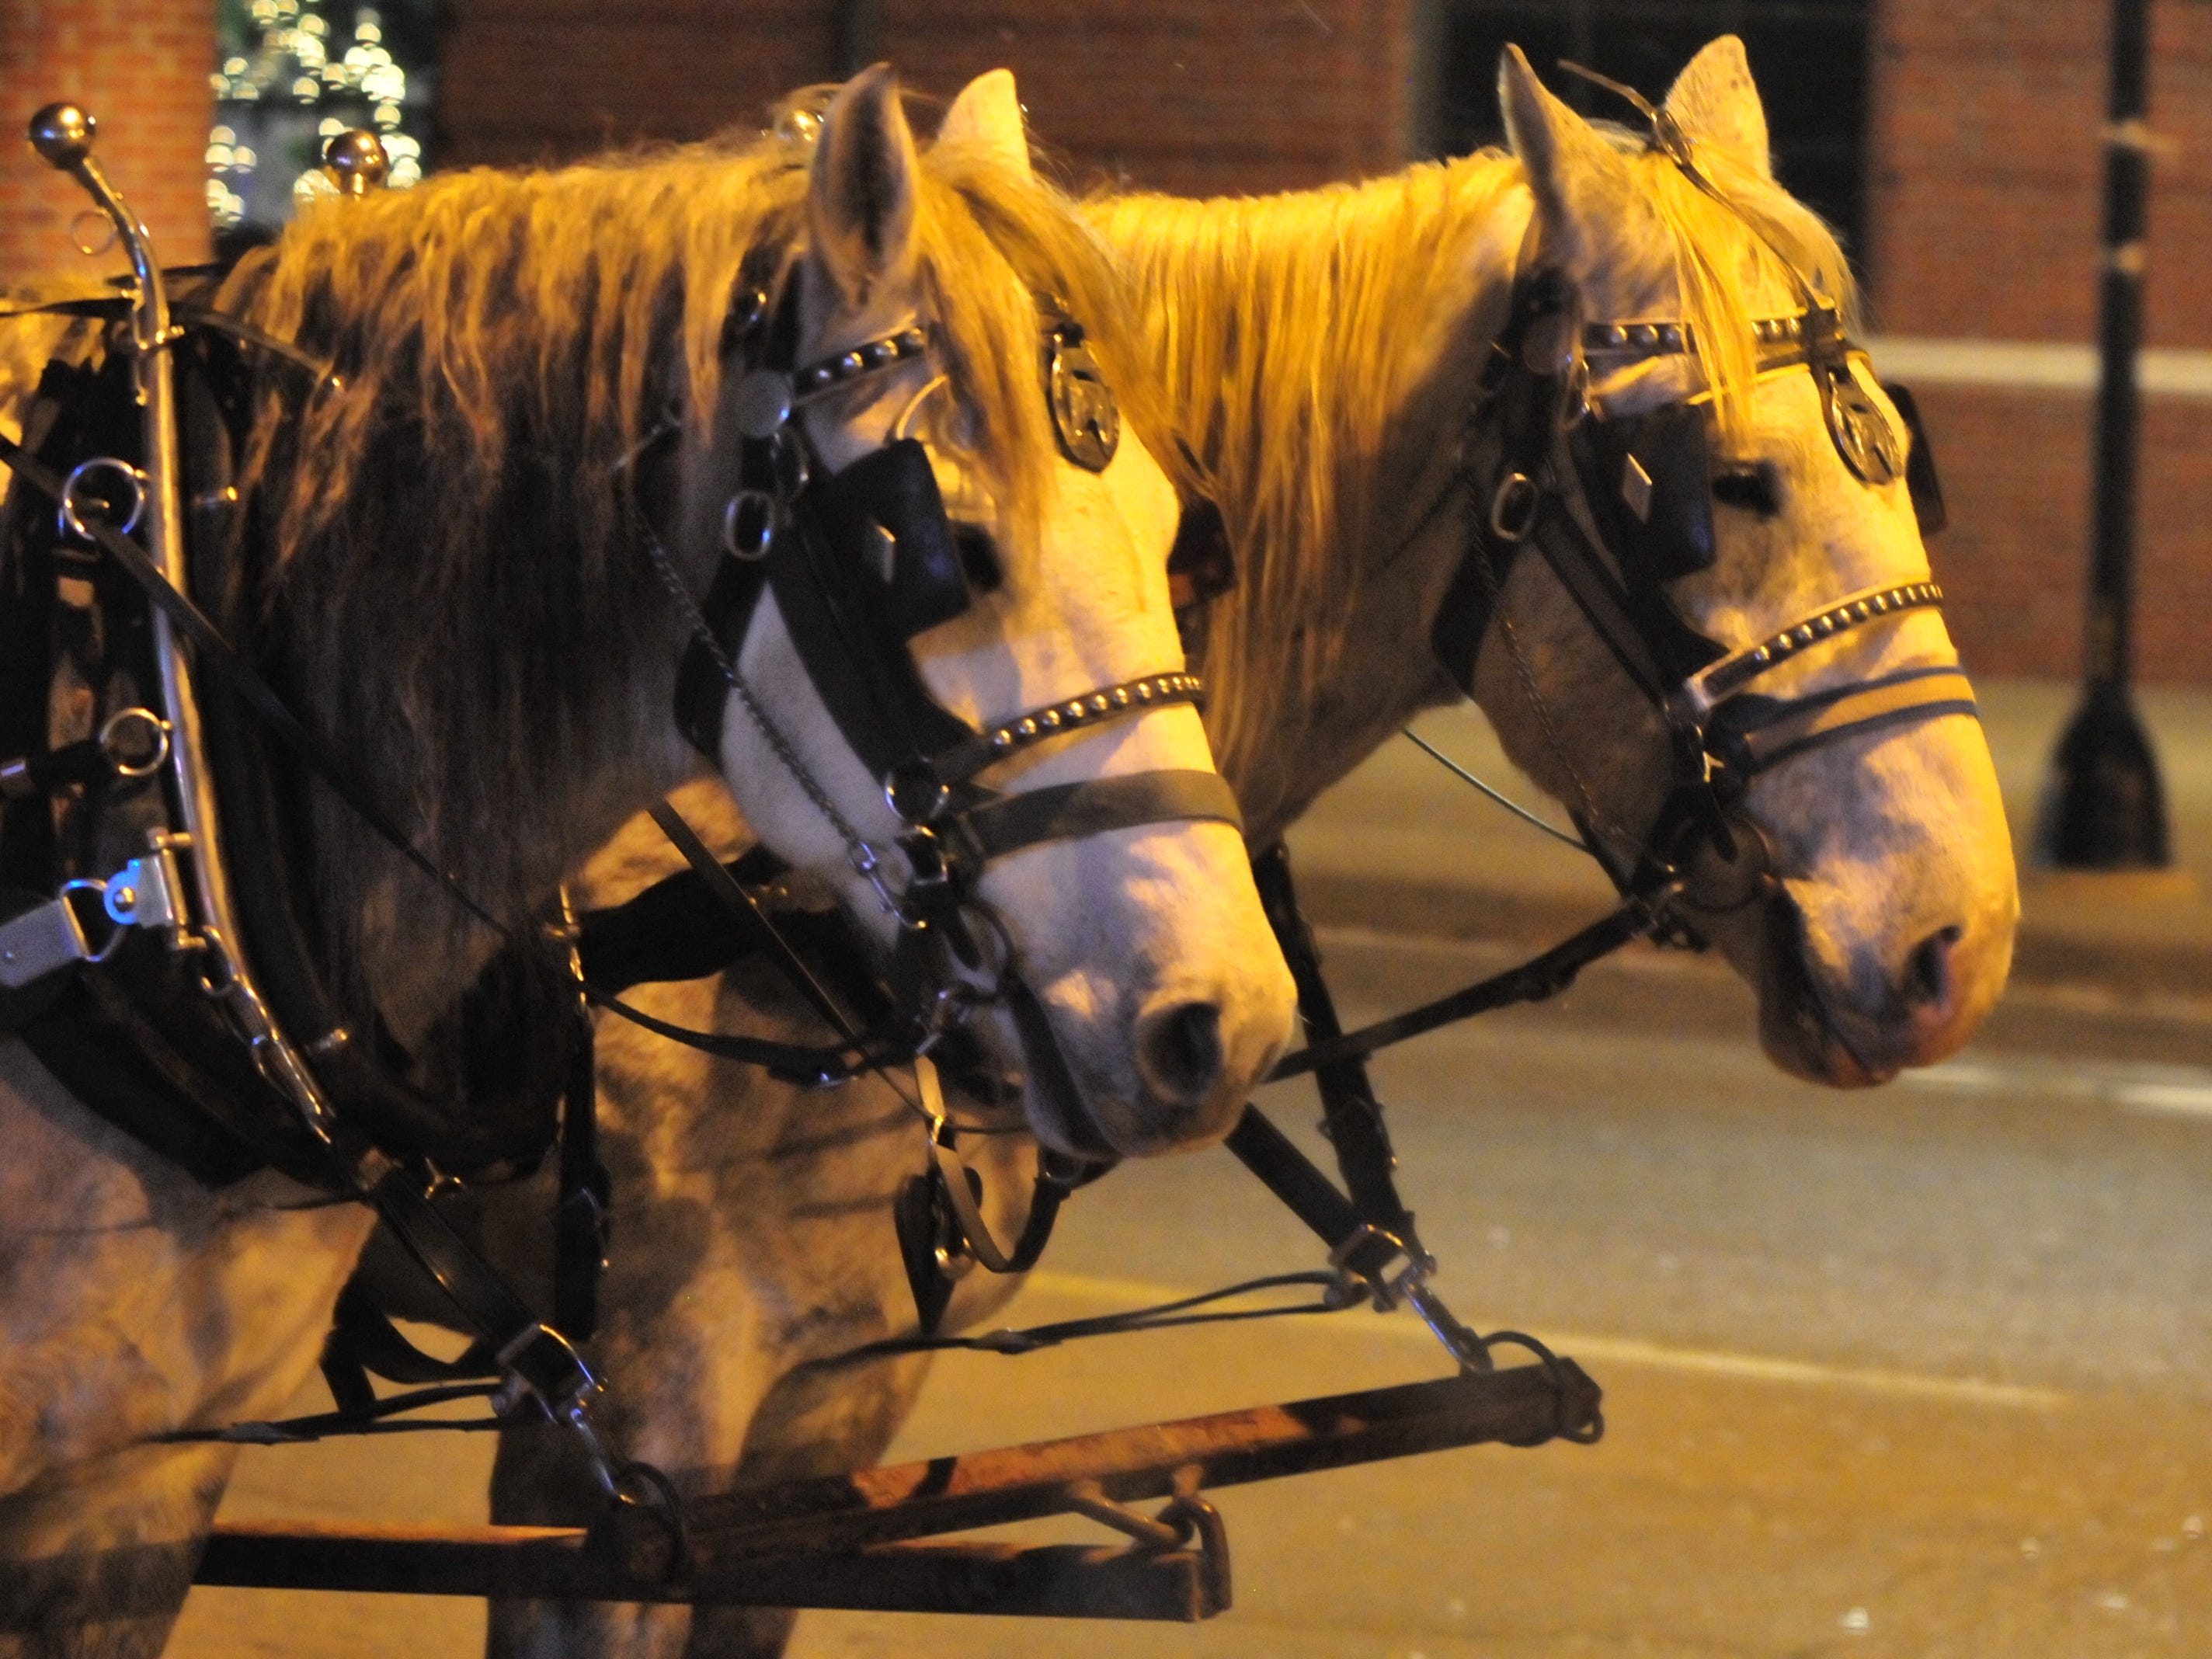 Horses wait to provide more wagon rides Tuesday during the 14th annual Old-Fashioned-Christmas Festival.